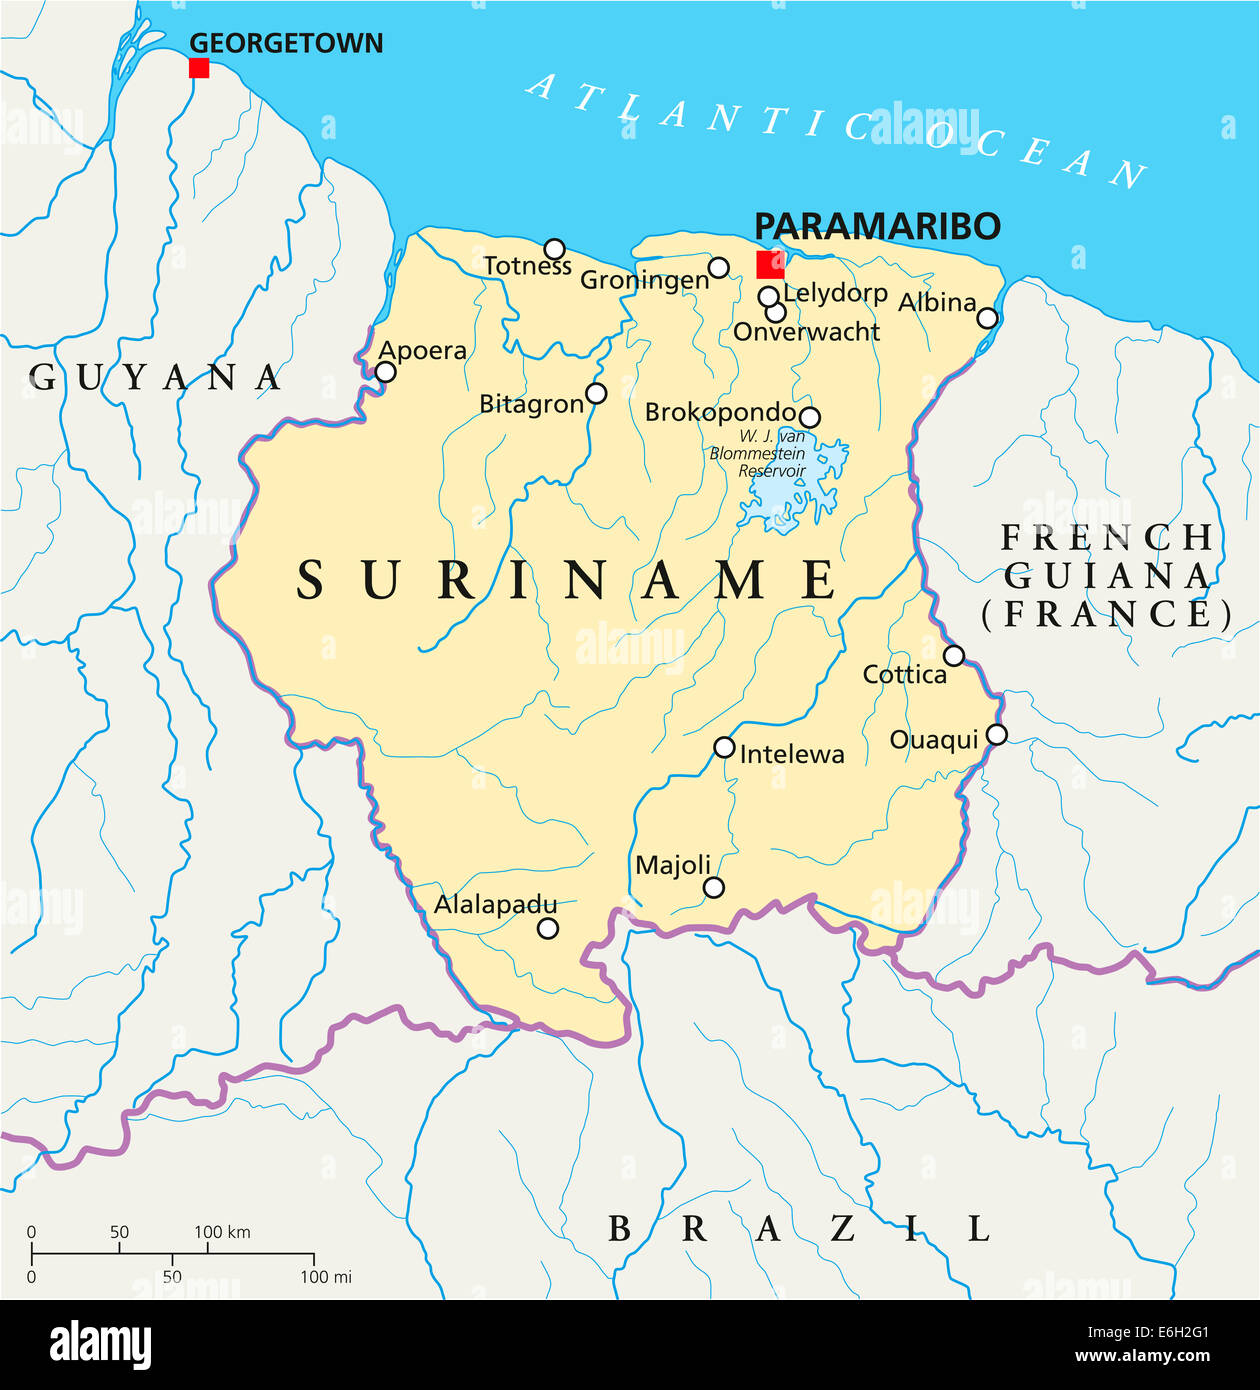 Suriname Political Map With Capital Paramaribo National Borders - paramaribo map